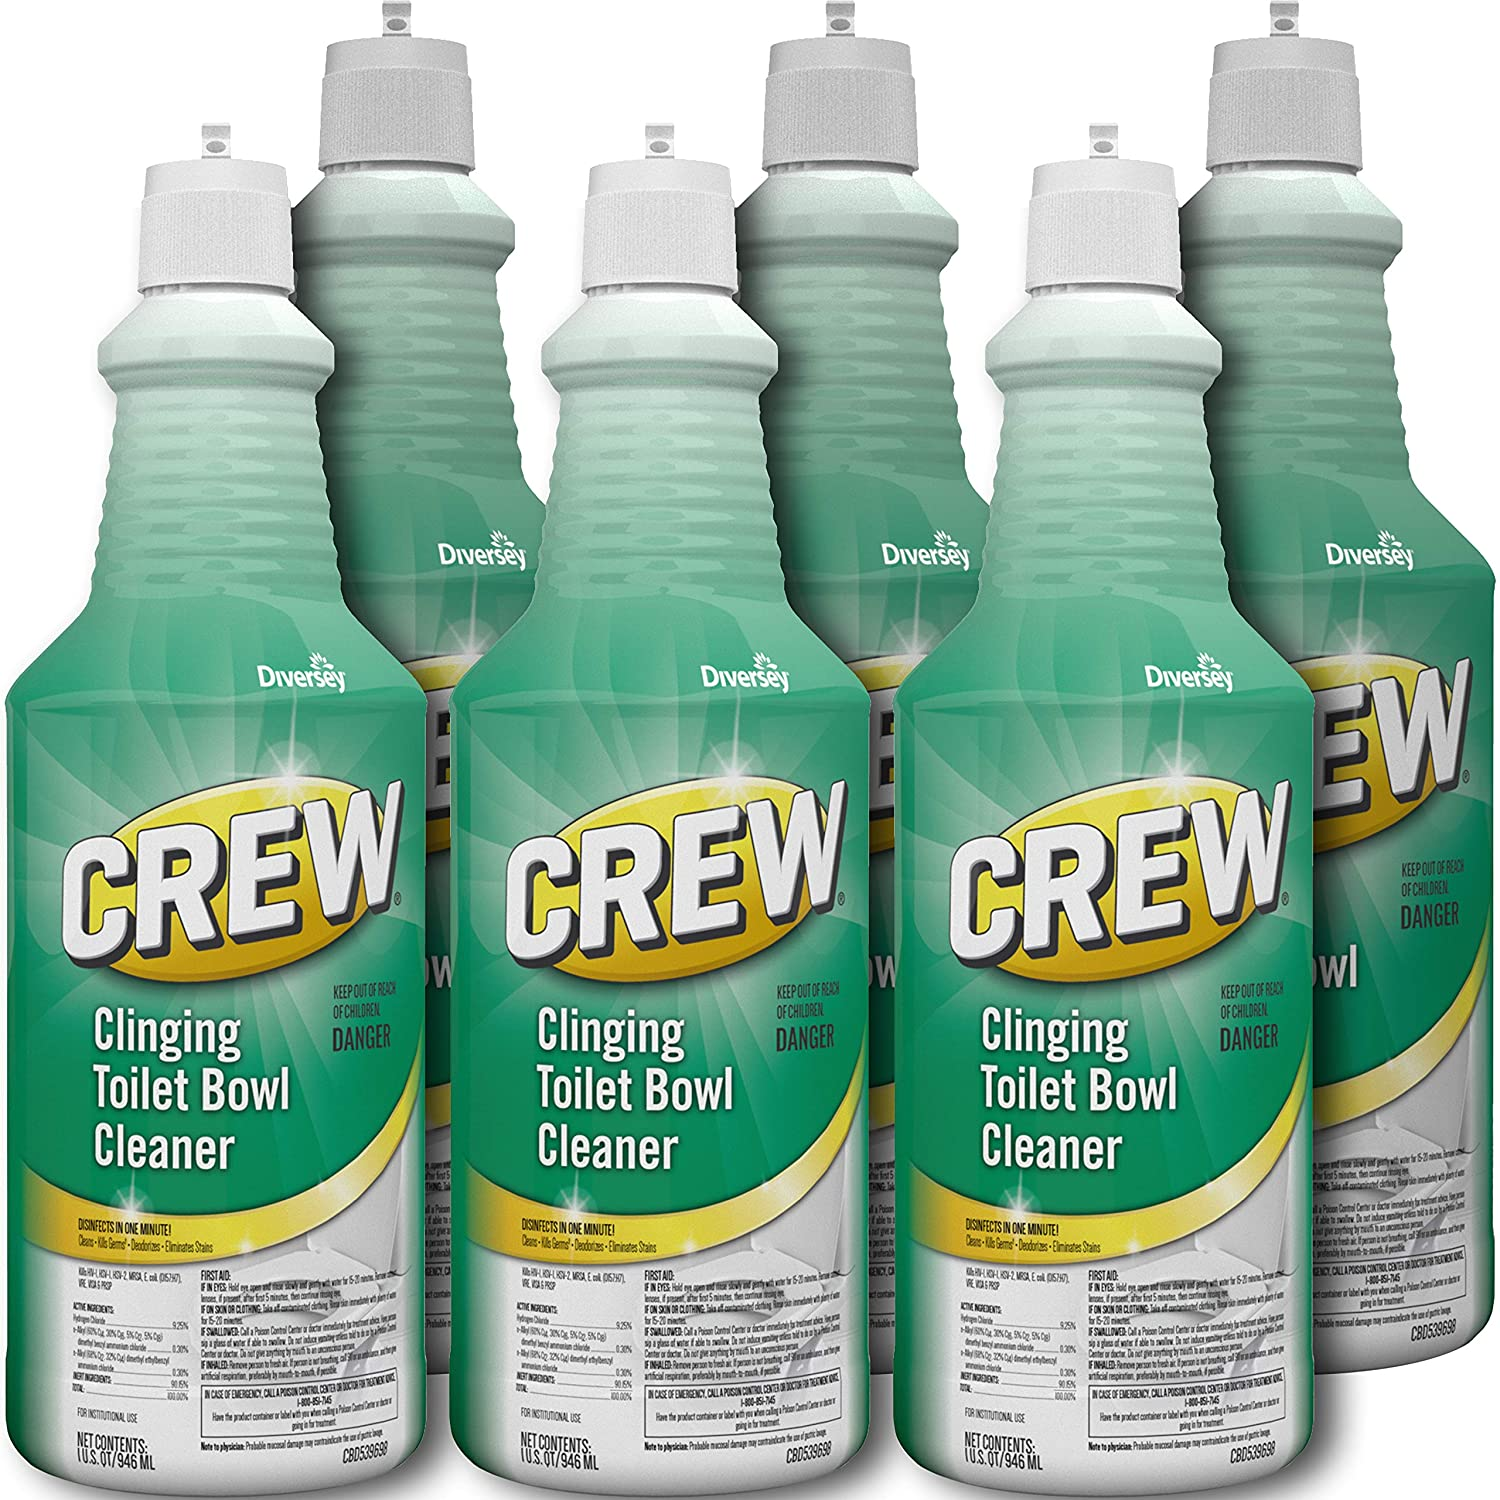 Diversey Crew Clinging Toilet Bowl Cleaner Squeeze Bottle